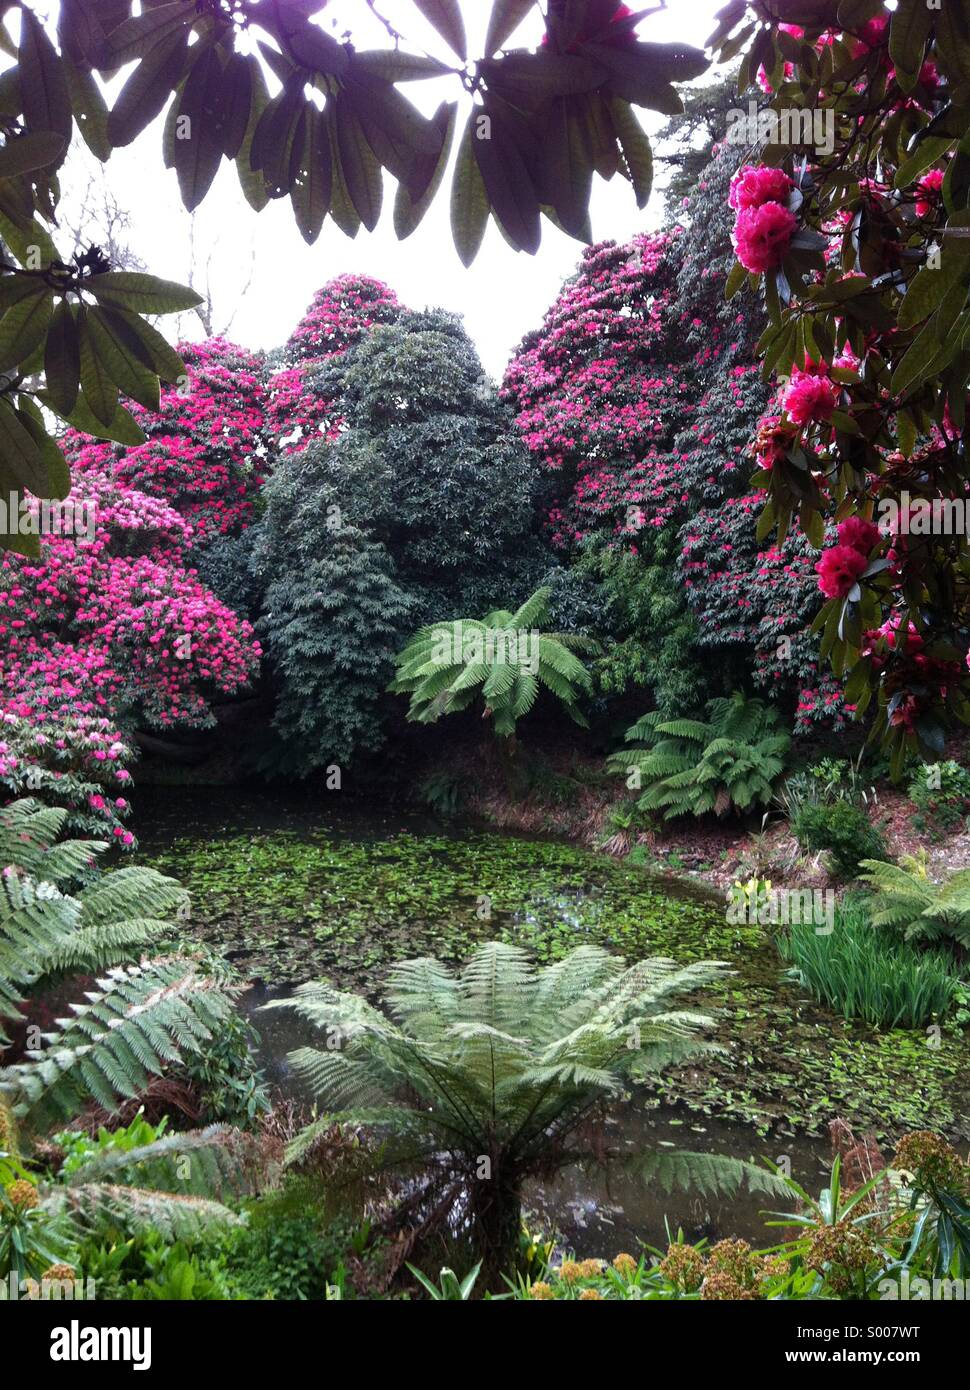 Rhododendrons and Dickensonia Antartica tree ferns at Heligan Gardens Cornwall - Stock Image